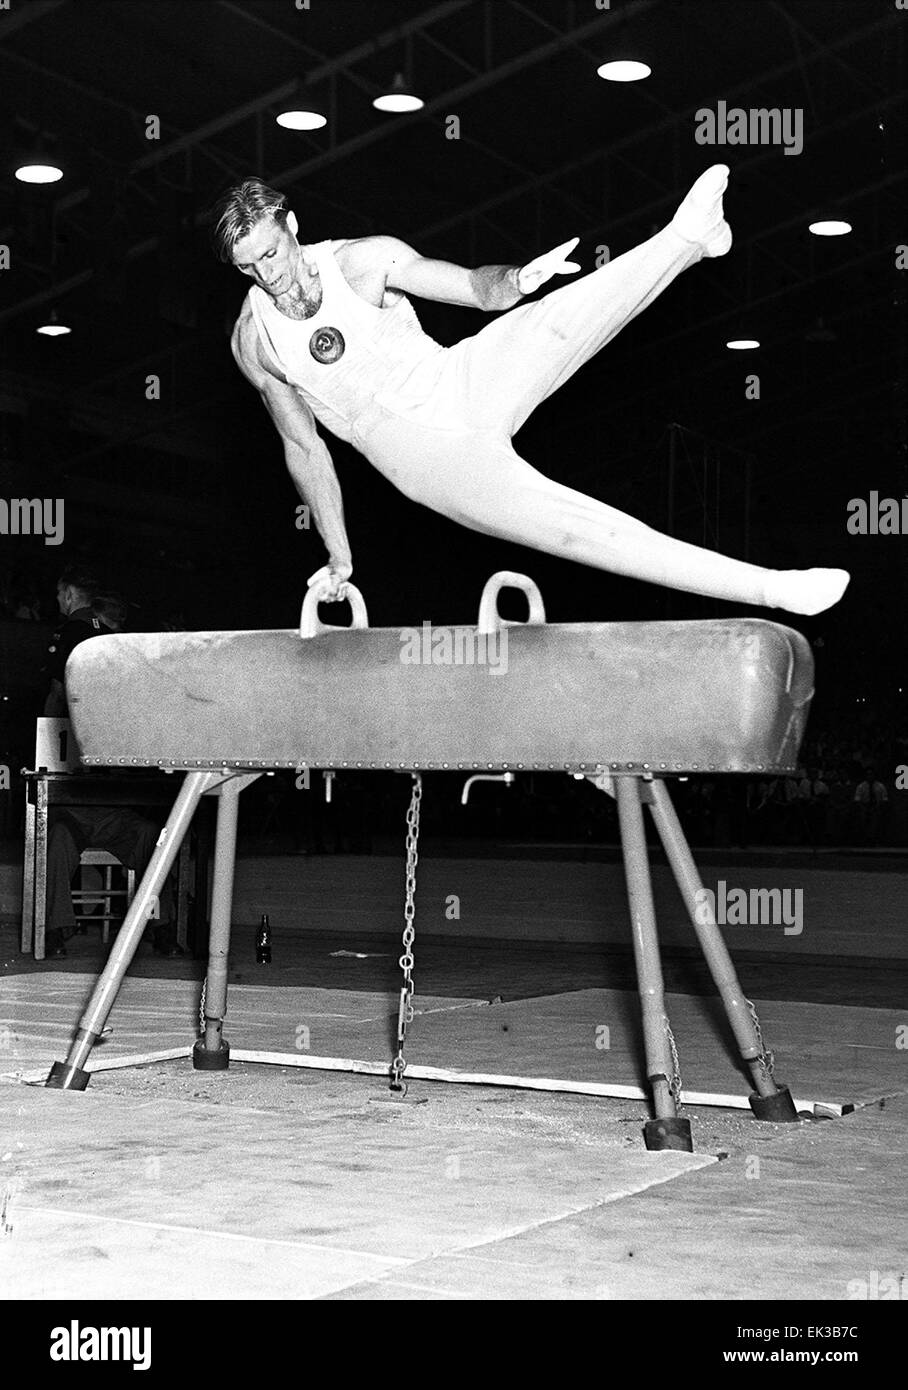 Australia. Melbourne. XVI Summer Olympics. Gymnast B. Shakhlin USSR performs on the pommel horse. - Stock Image